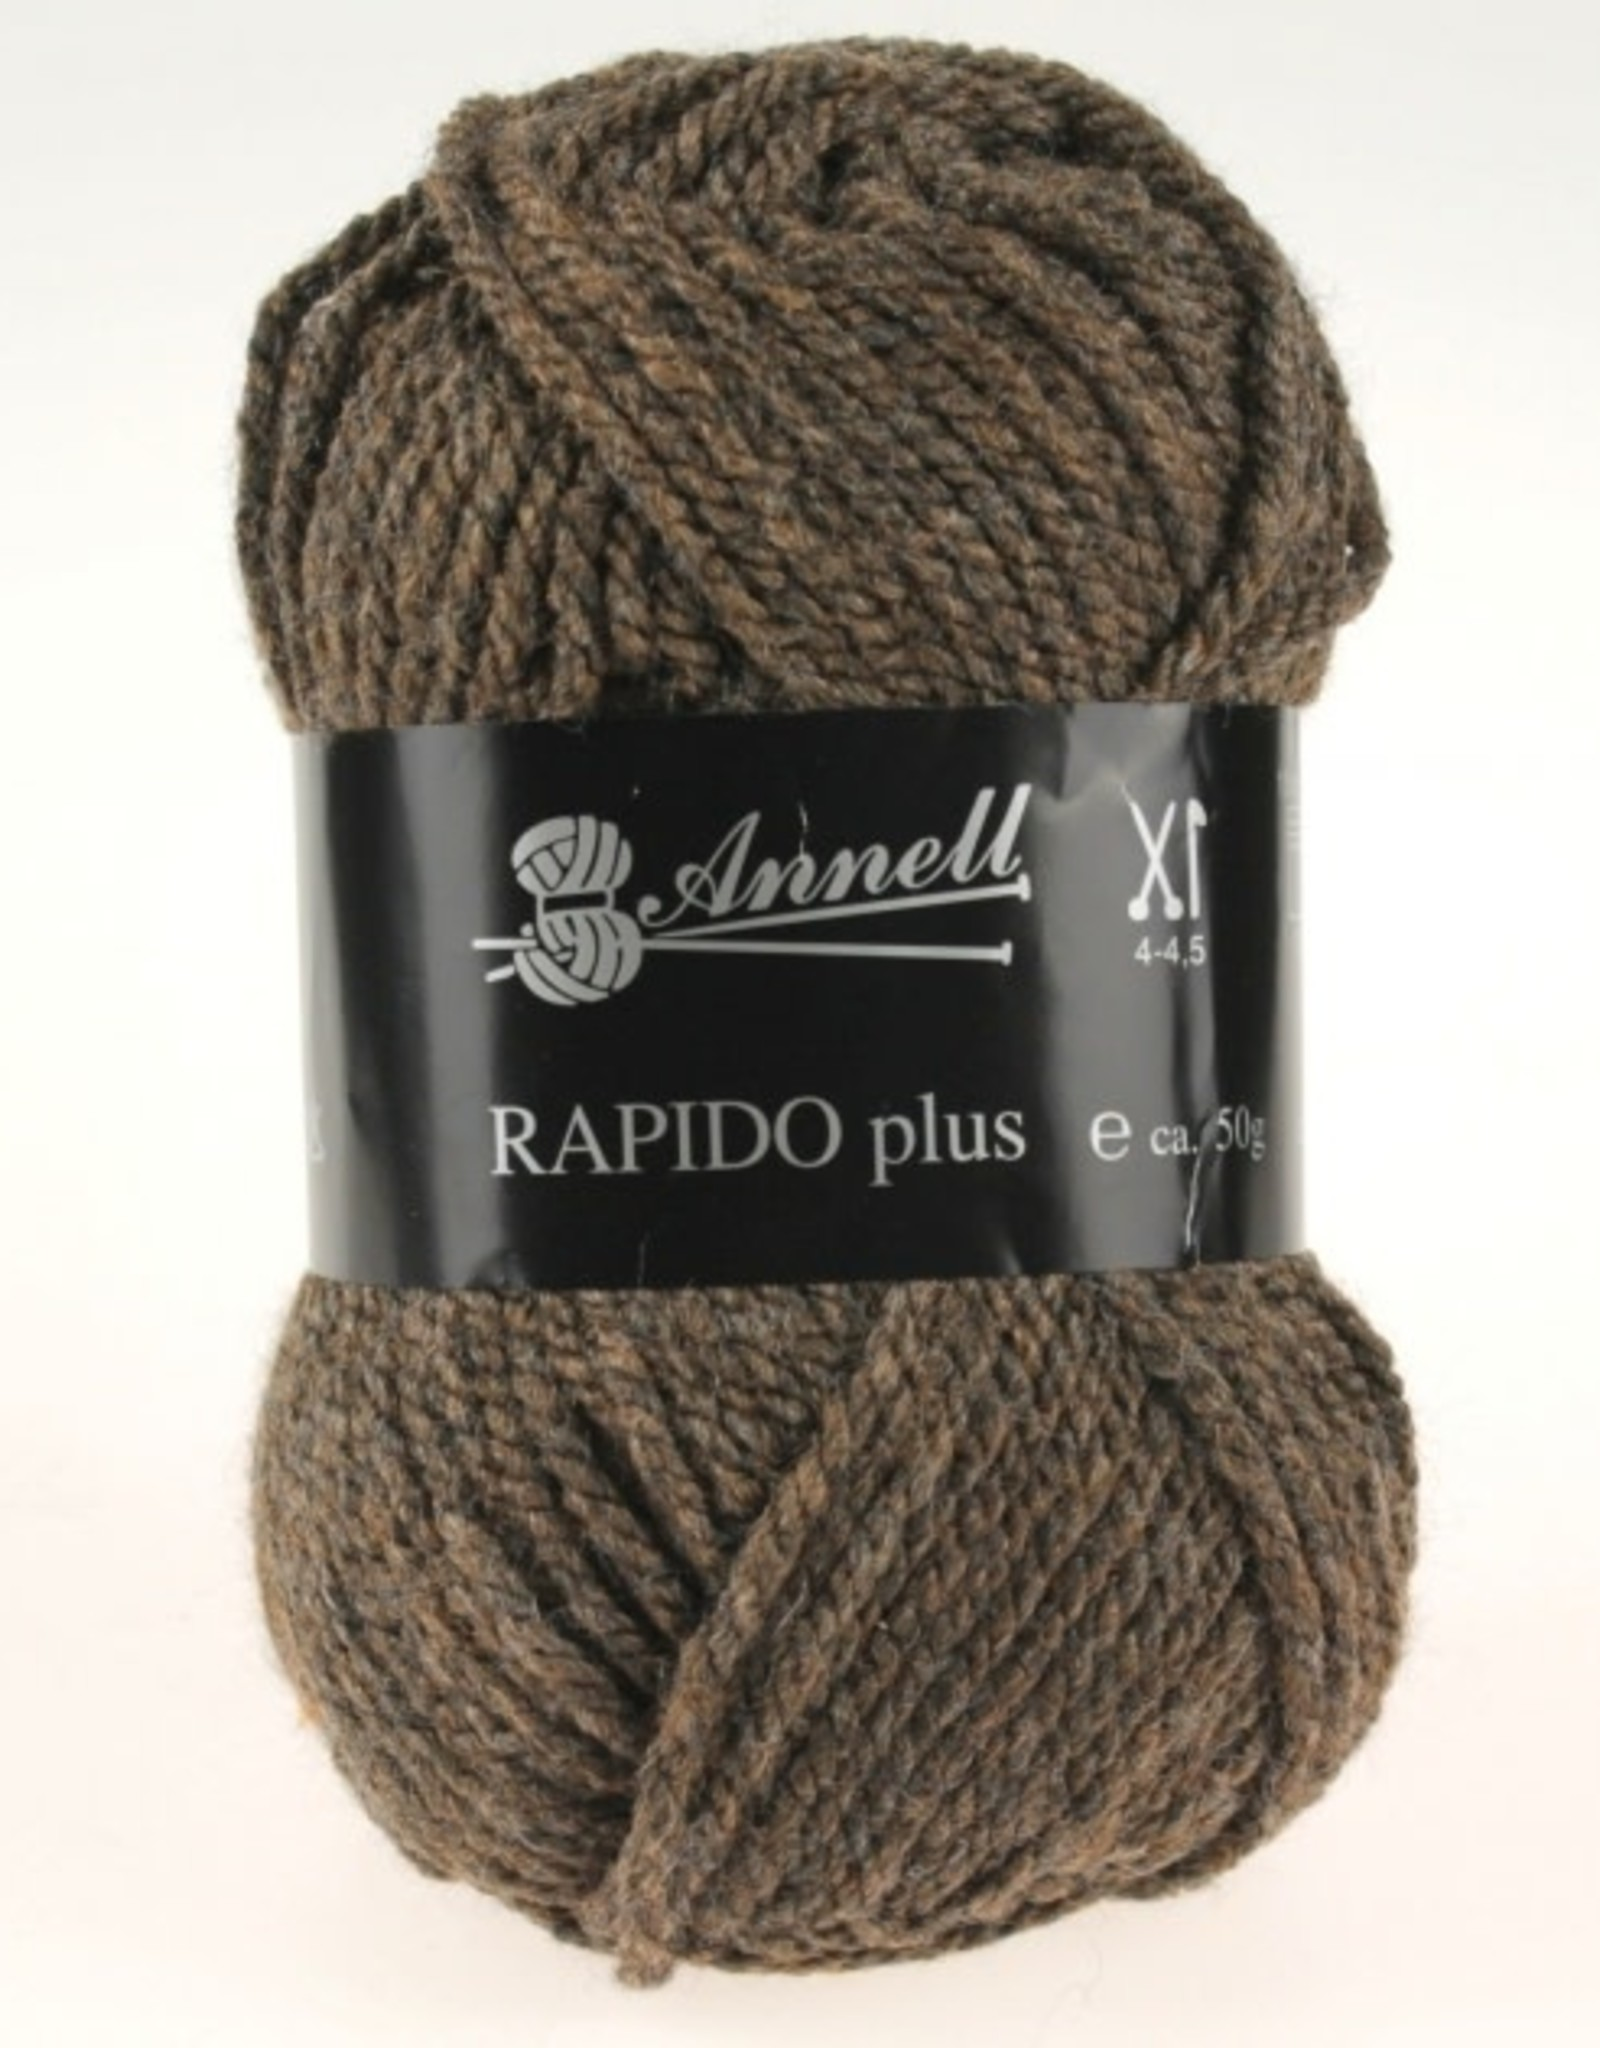 Annell Annell rapido plus 9301